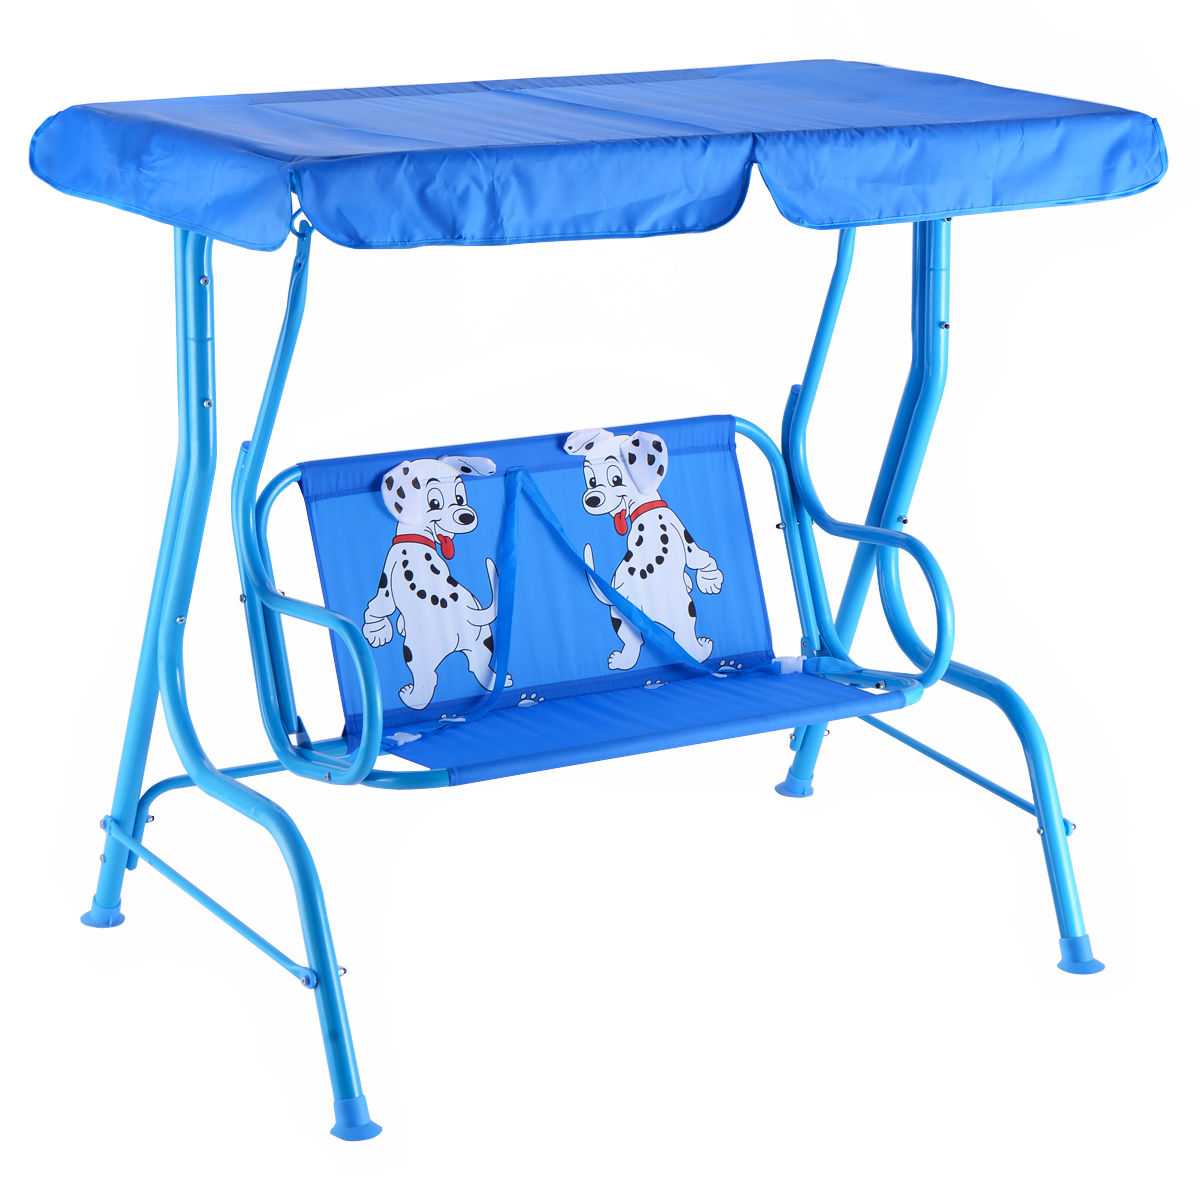 Image of Outdoor Kids Patio Swing Bench with Canopy 2 Seats